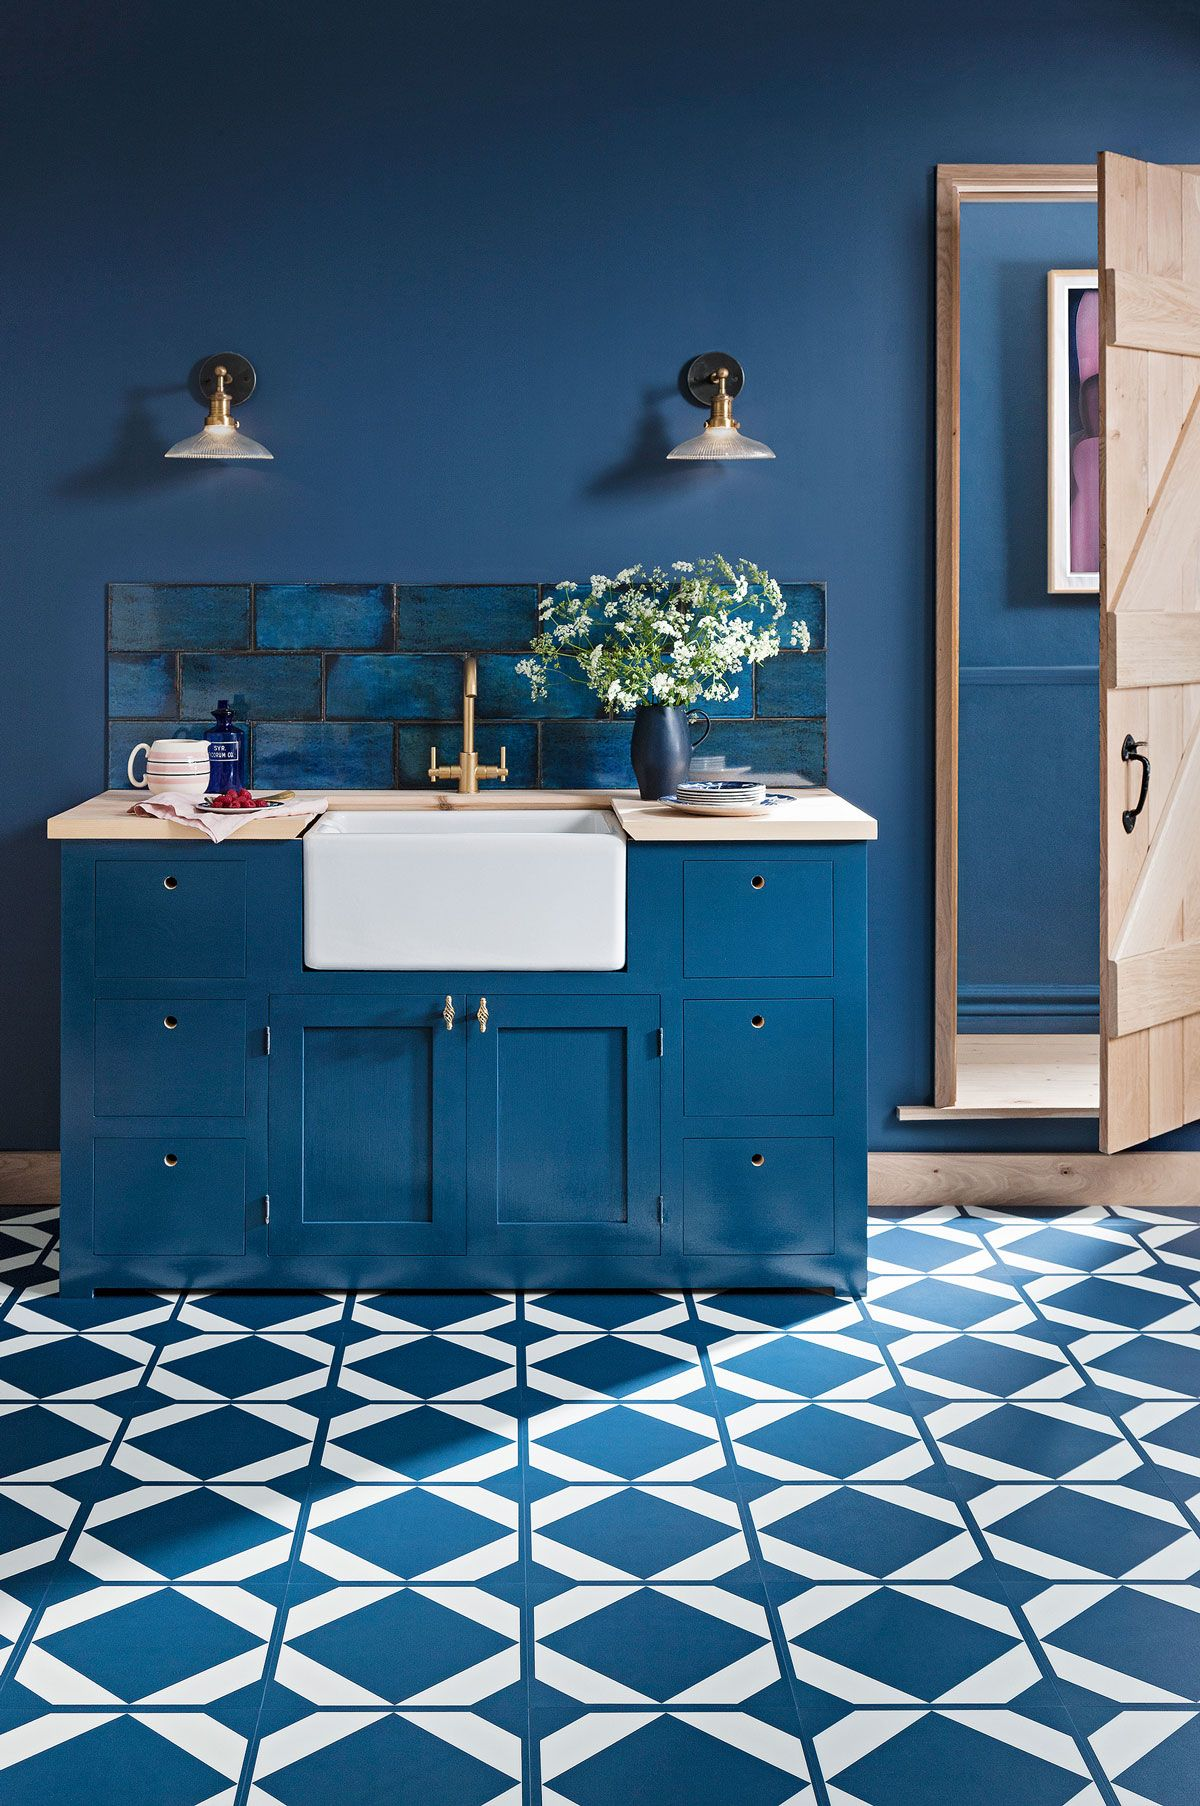 Step Up Your Kitchen Style With The Latest Design Trends For 2019 In 2020 Kitchen Design Trends Latest Kitchen Designs Latest Kitchen Trends